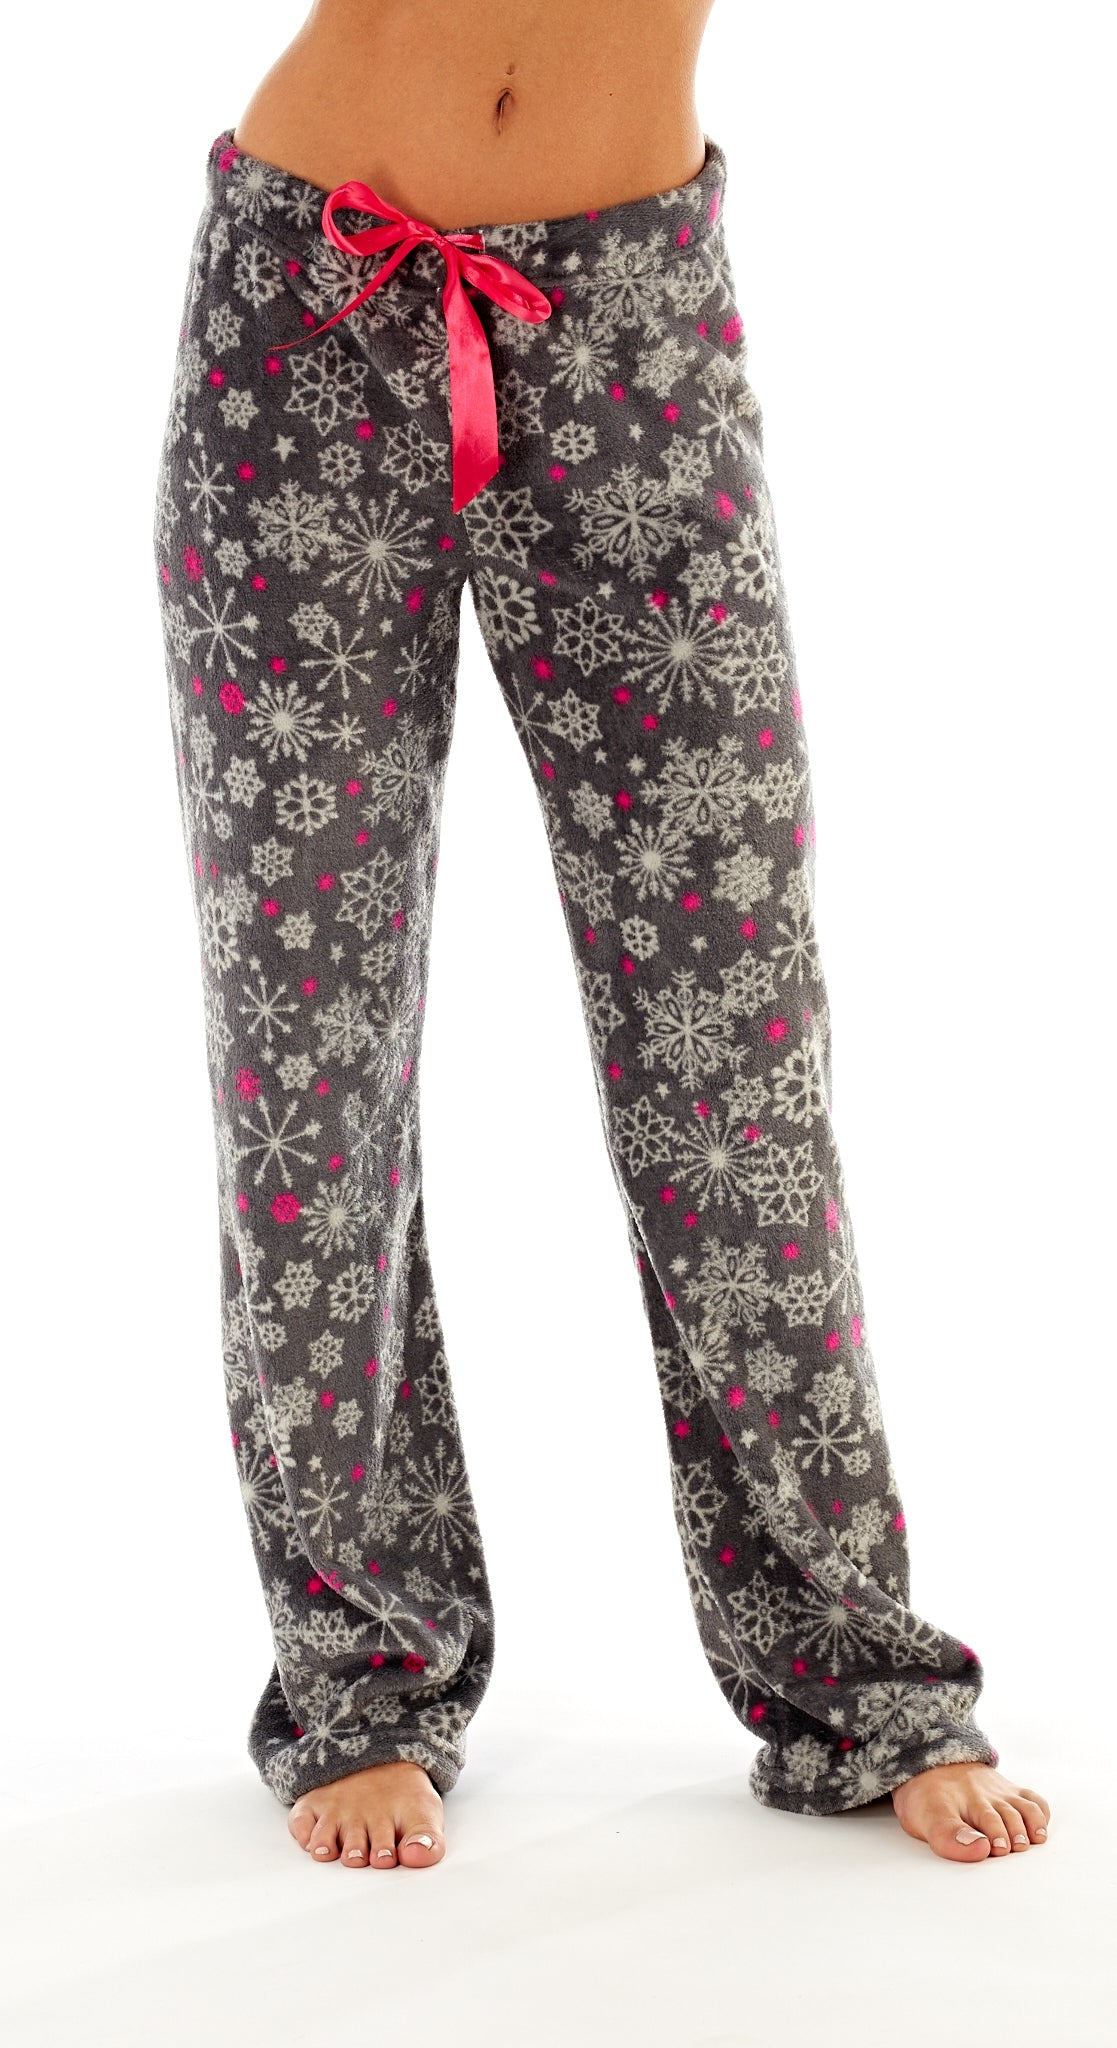 Octave Ladies Loungewear Pants Pyjama Bottoms - Snowflake